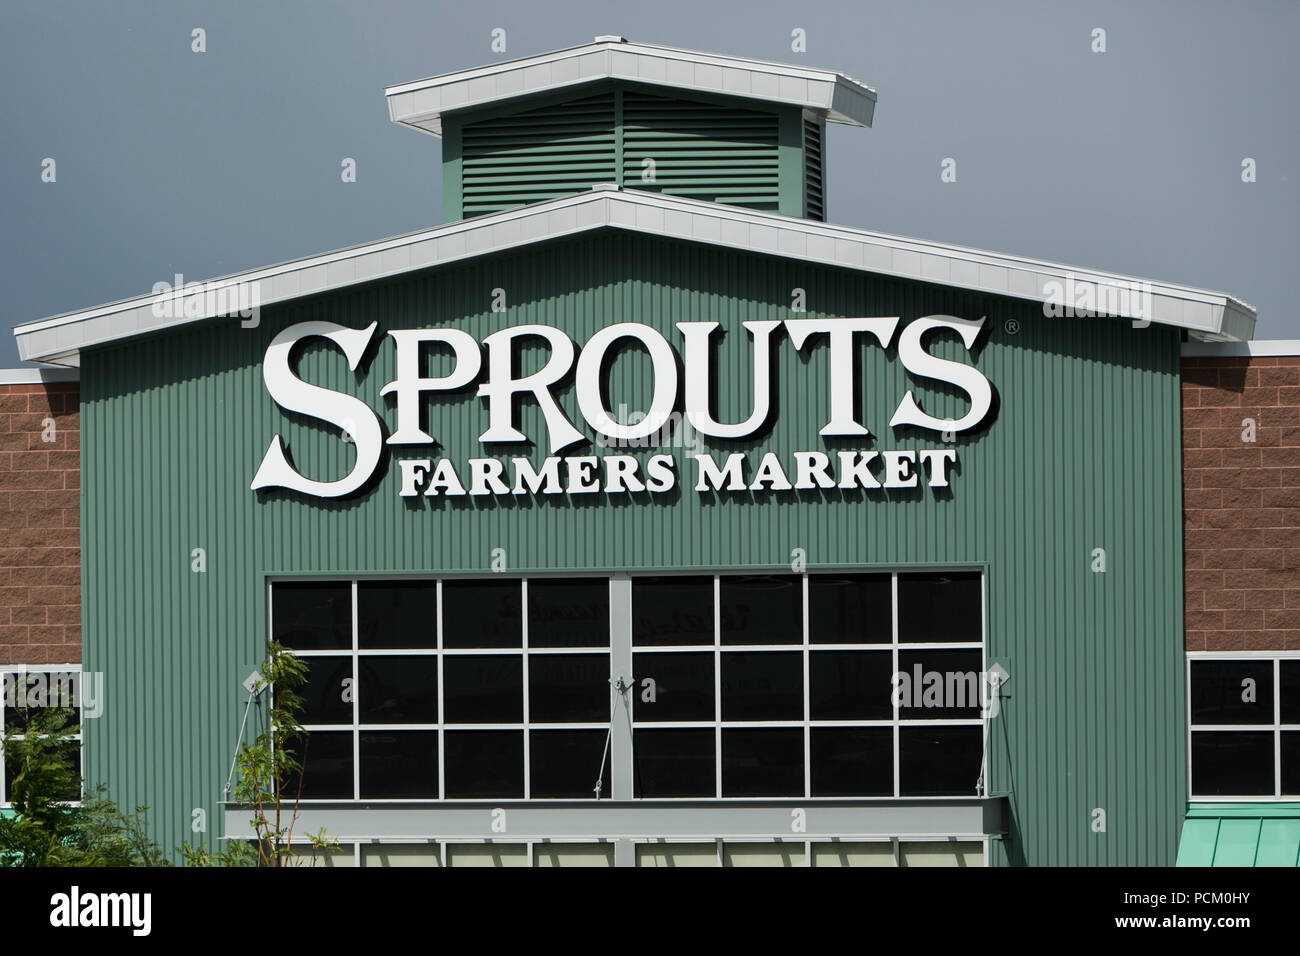 Sprouts Farmers Market Stock Photos & Sprouts Farmers Market